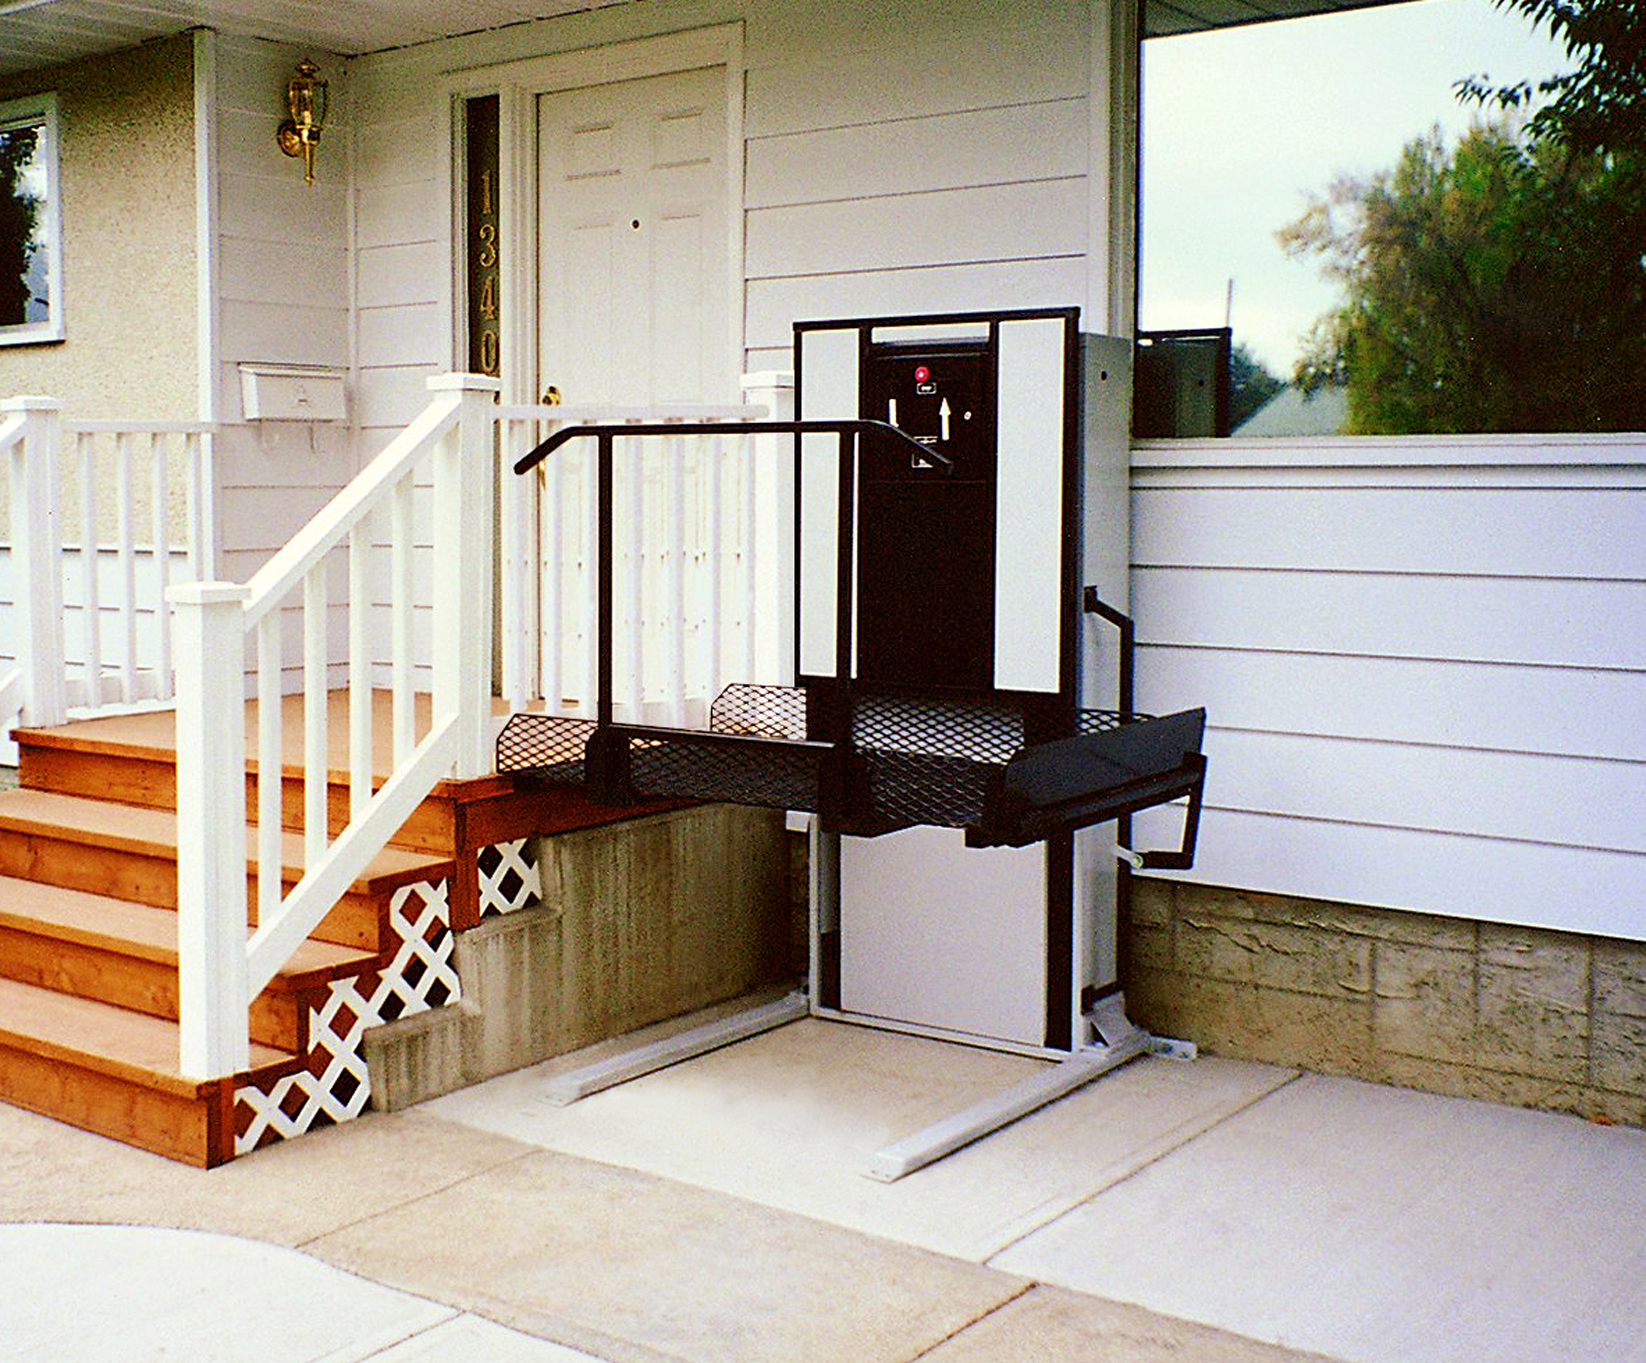 Residential Wheelchair Lift : Residential lifts what is a porch lift uppercut